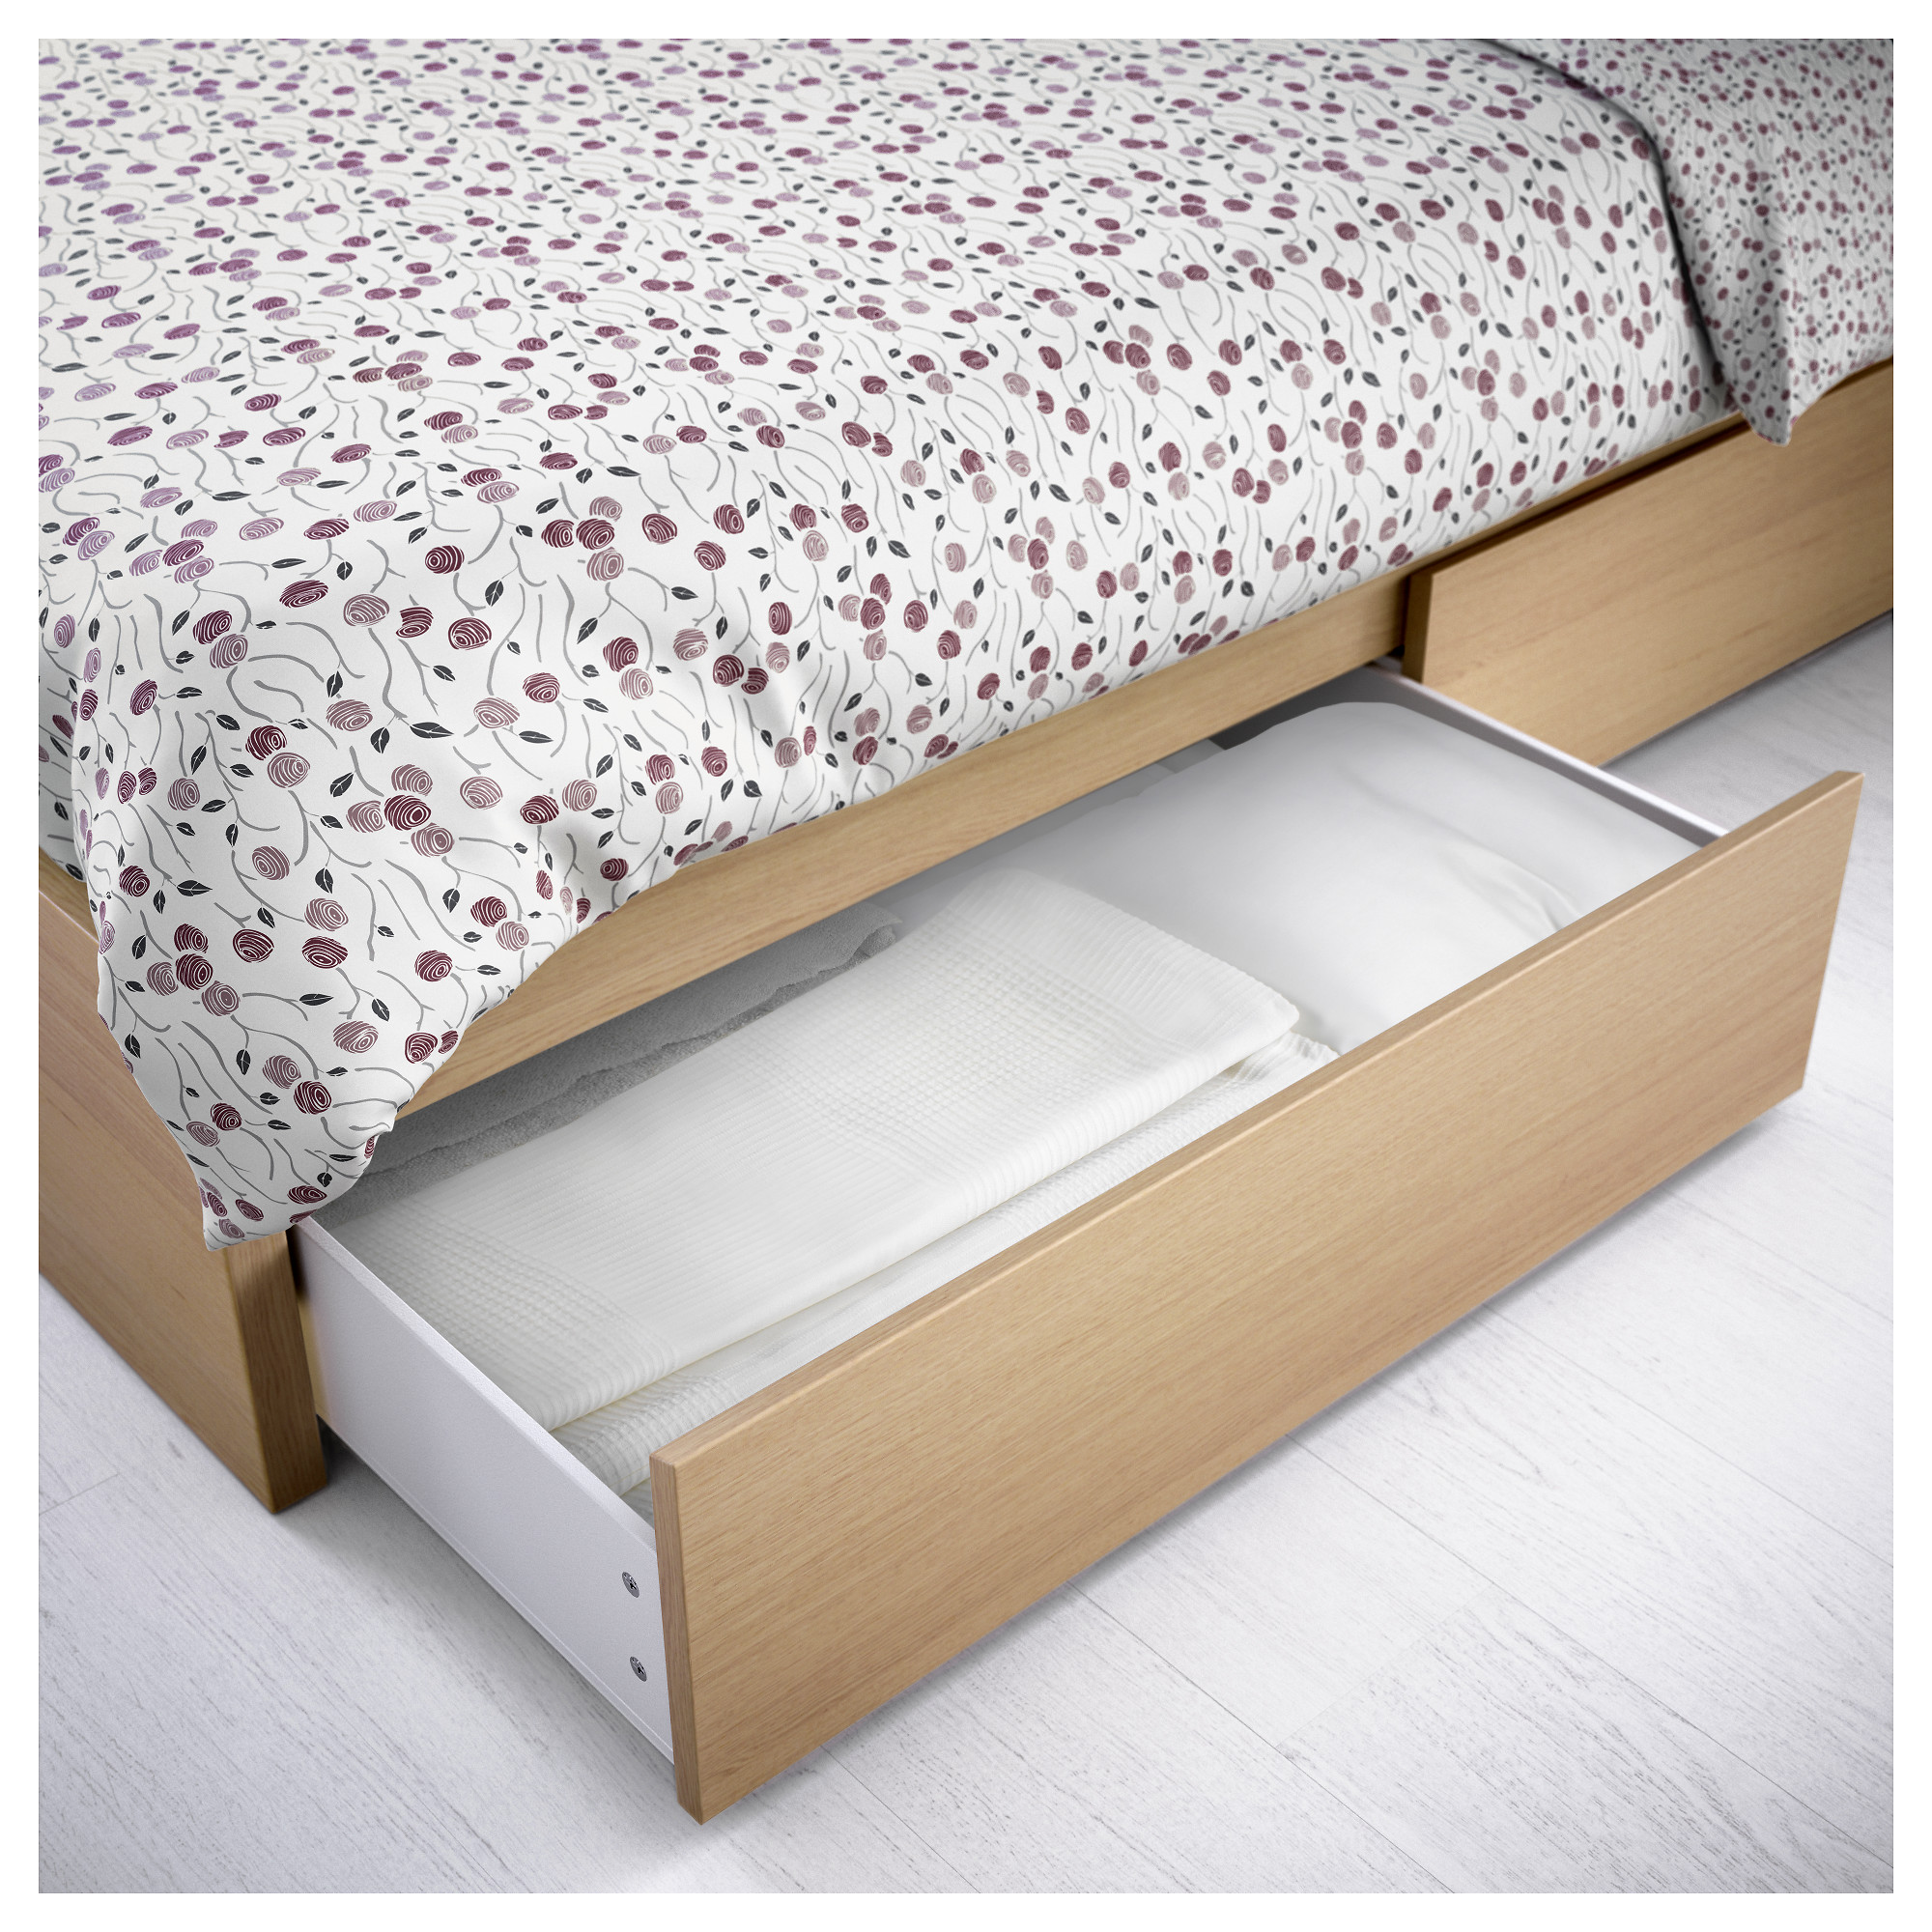 Malm Bed Storage Box For High Frame Queen King Ikea